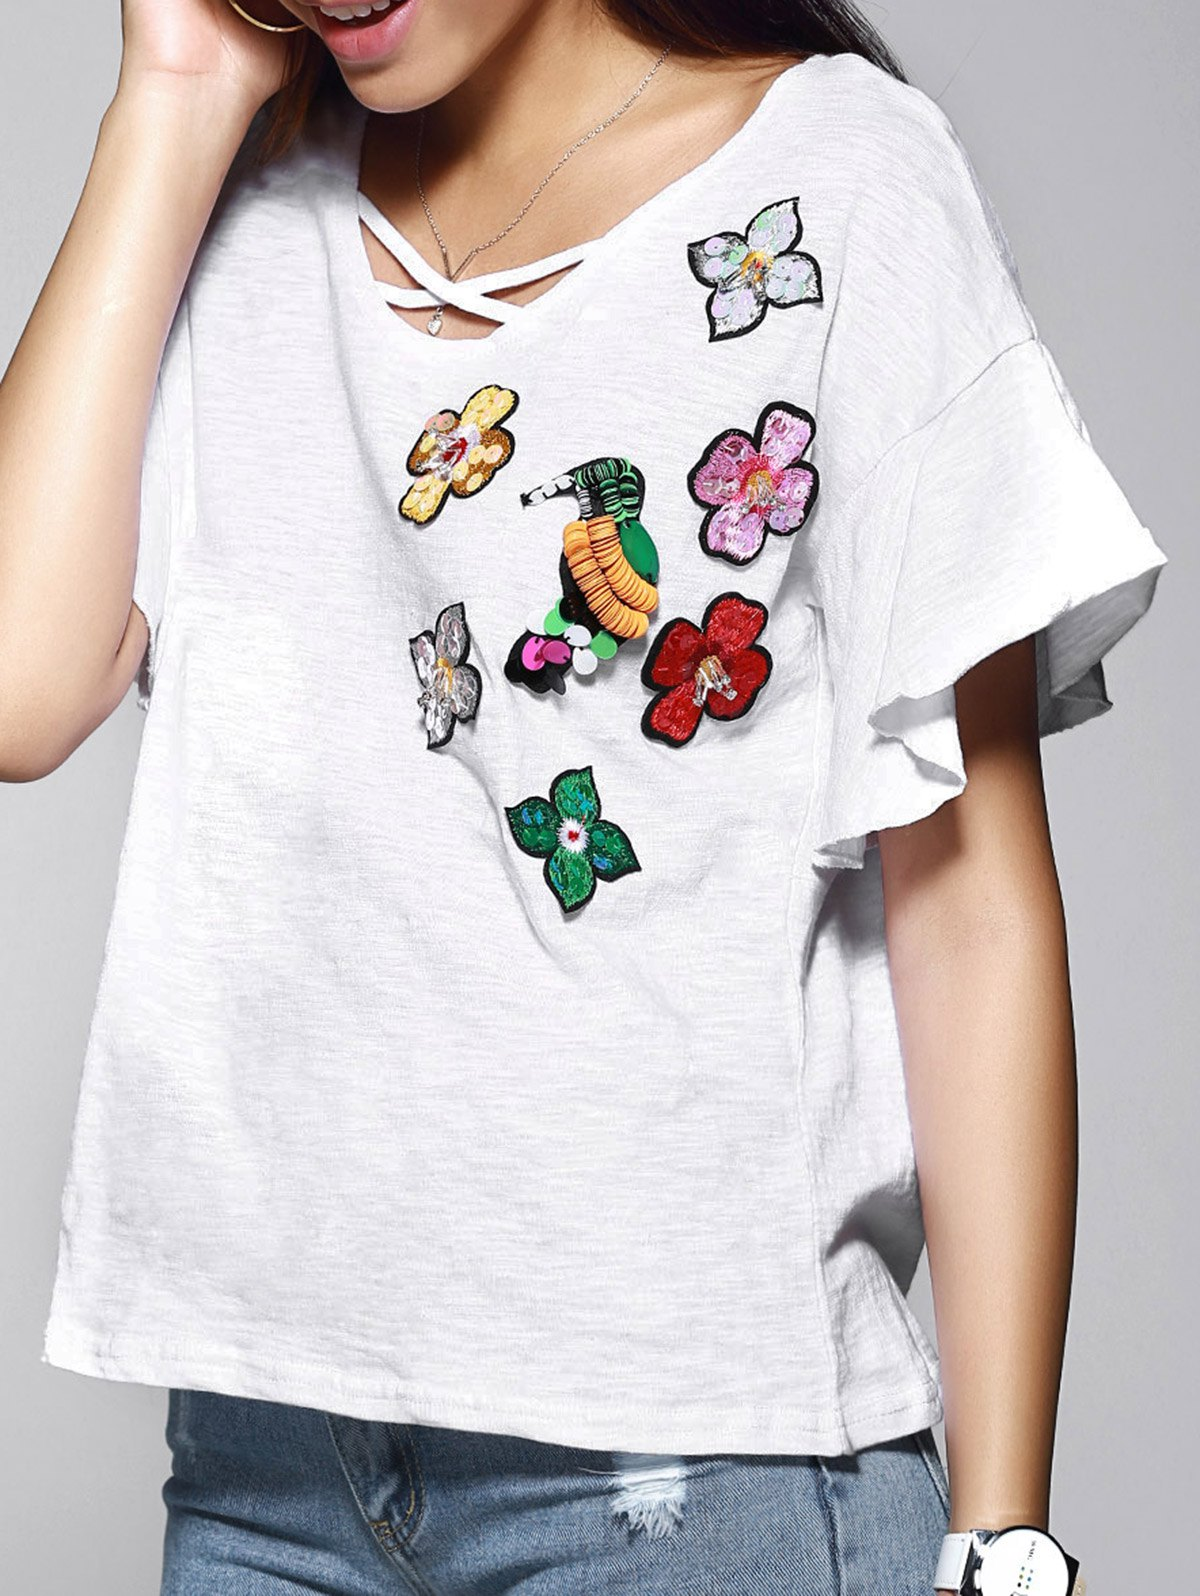 Charming Sequin Embellished Floral Embroidery Women's T-Shirt